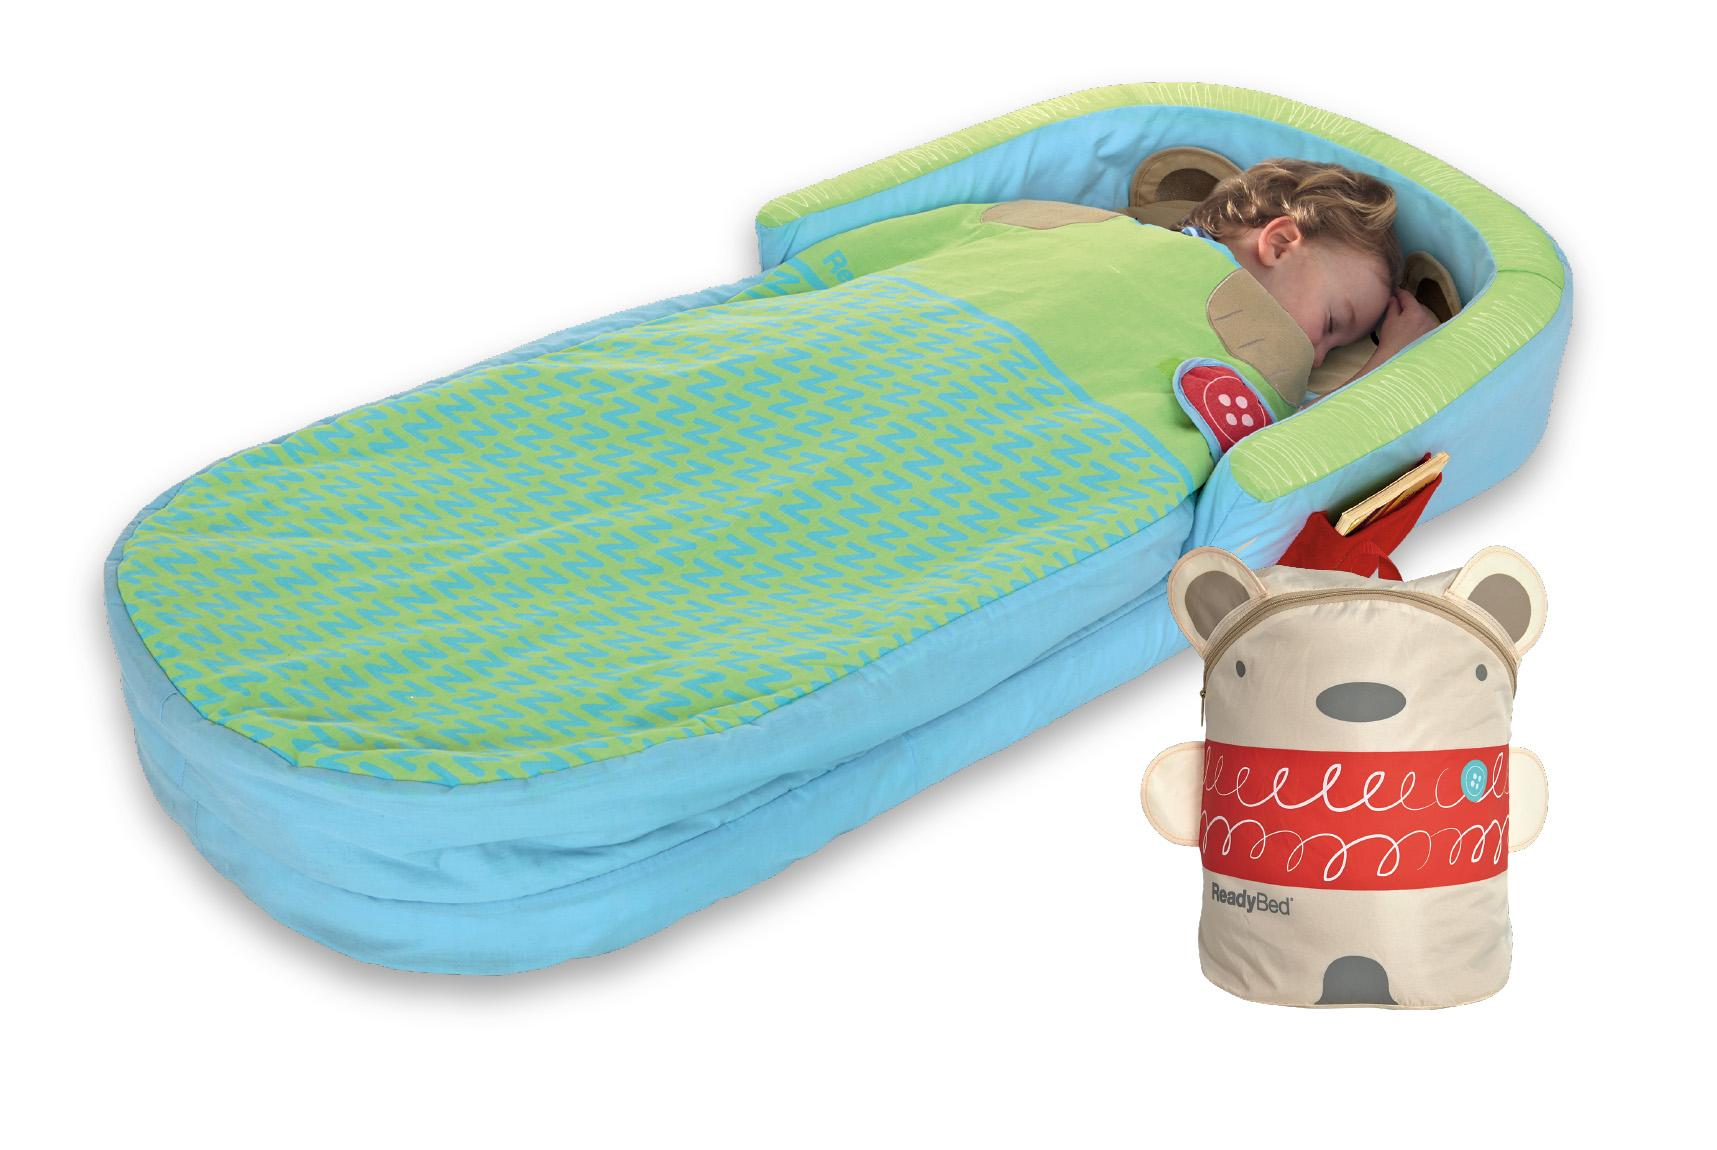 Toddler Ready Bed Reviews